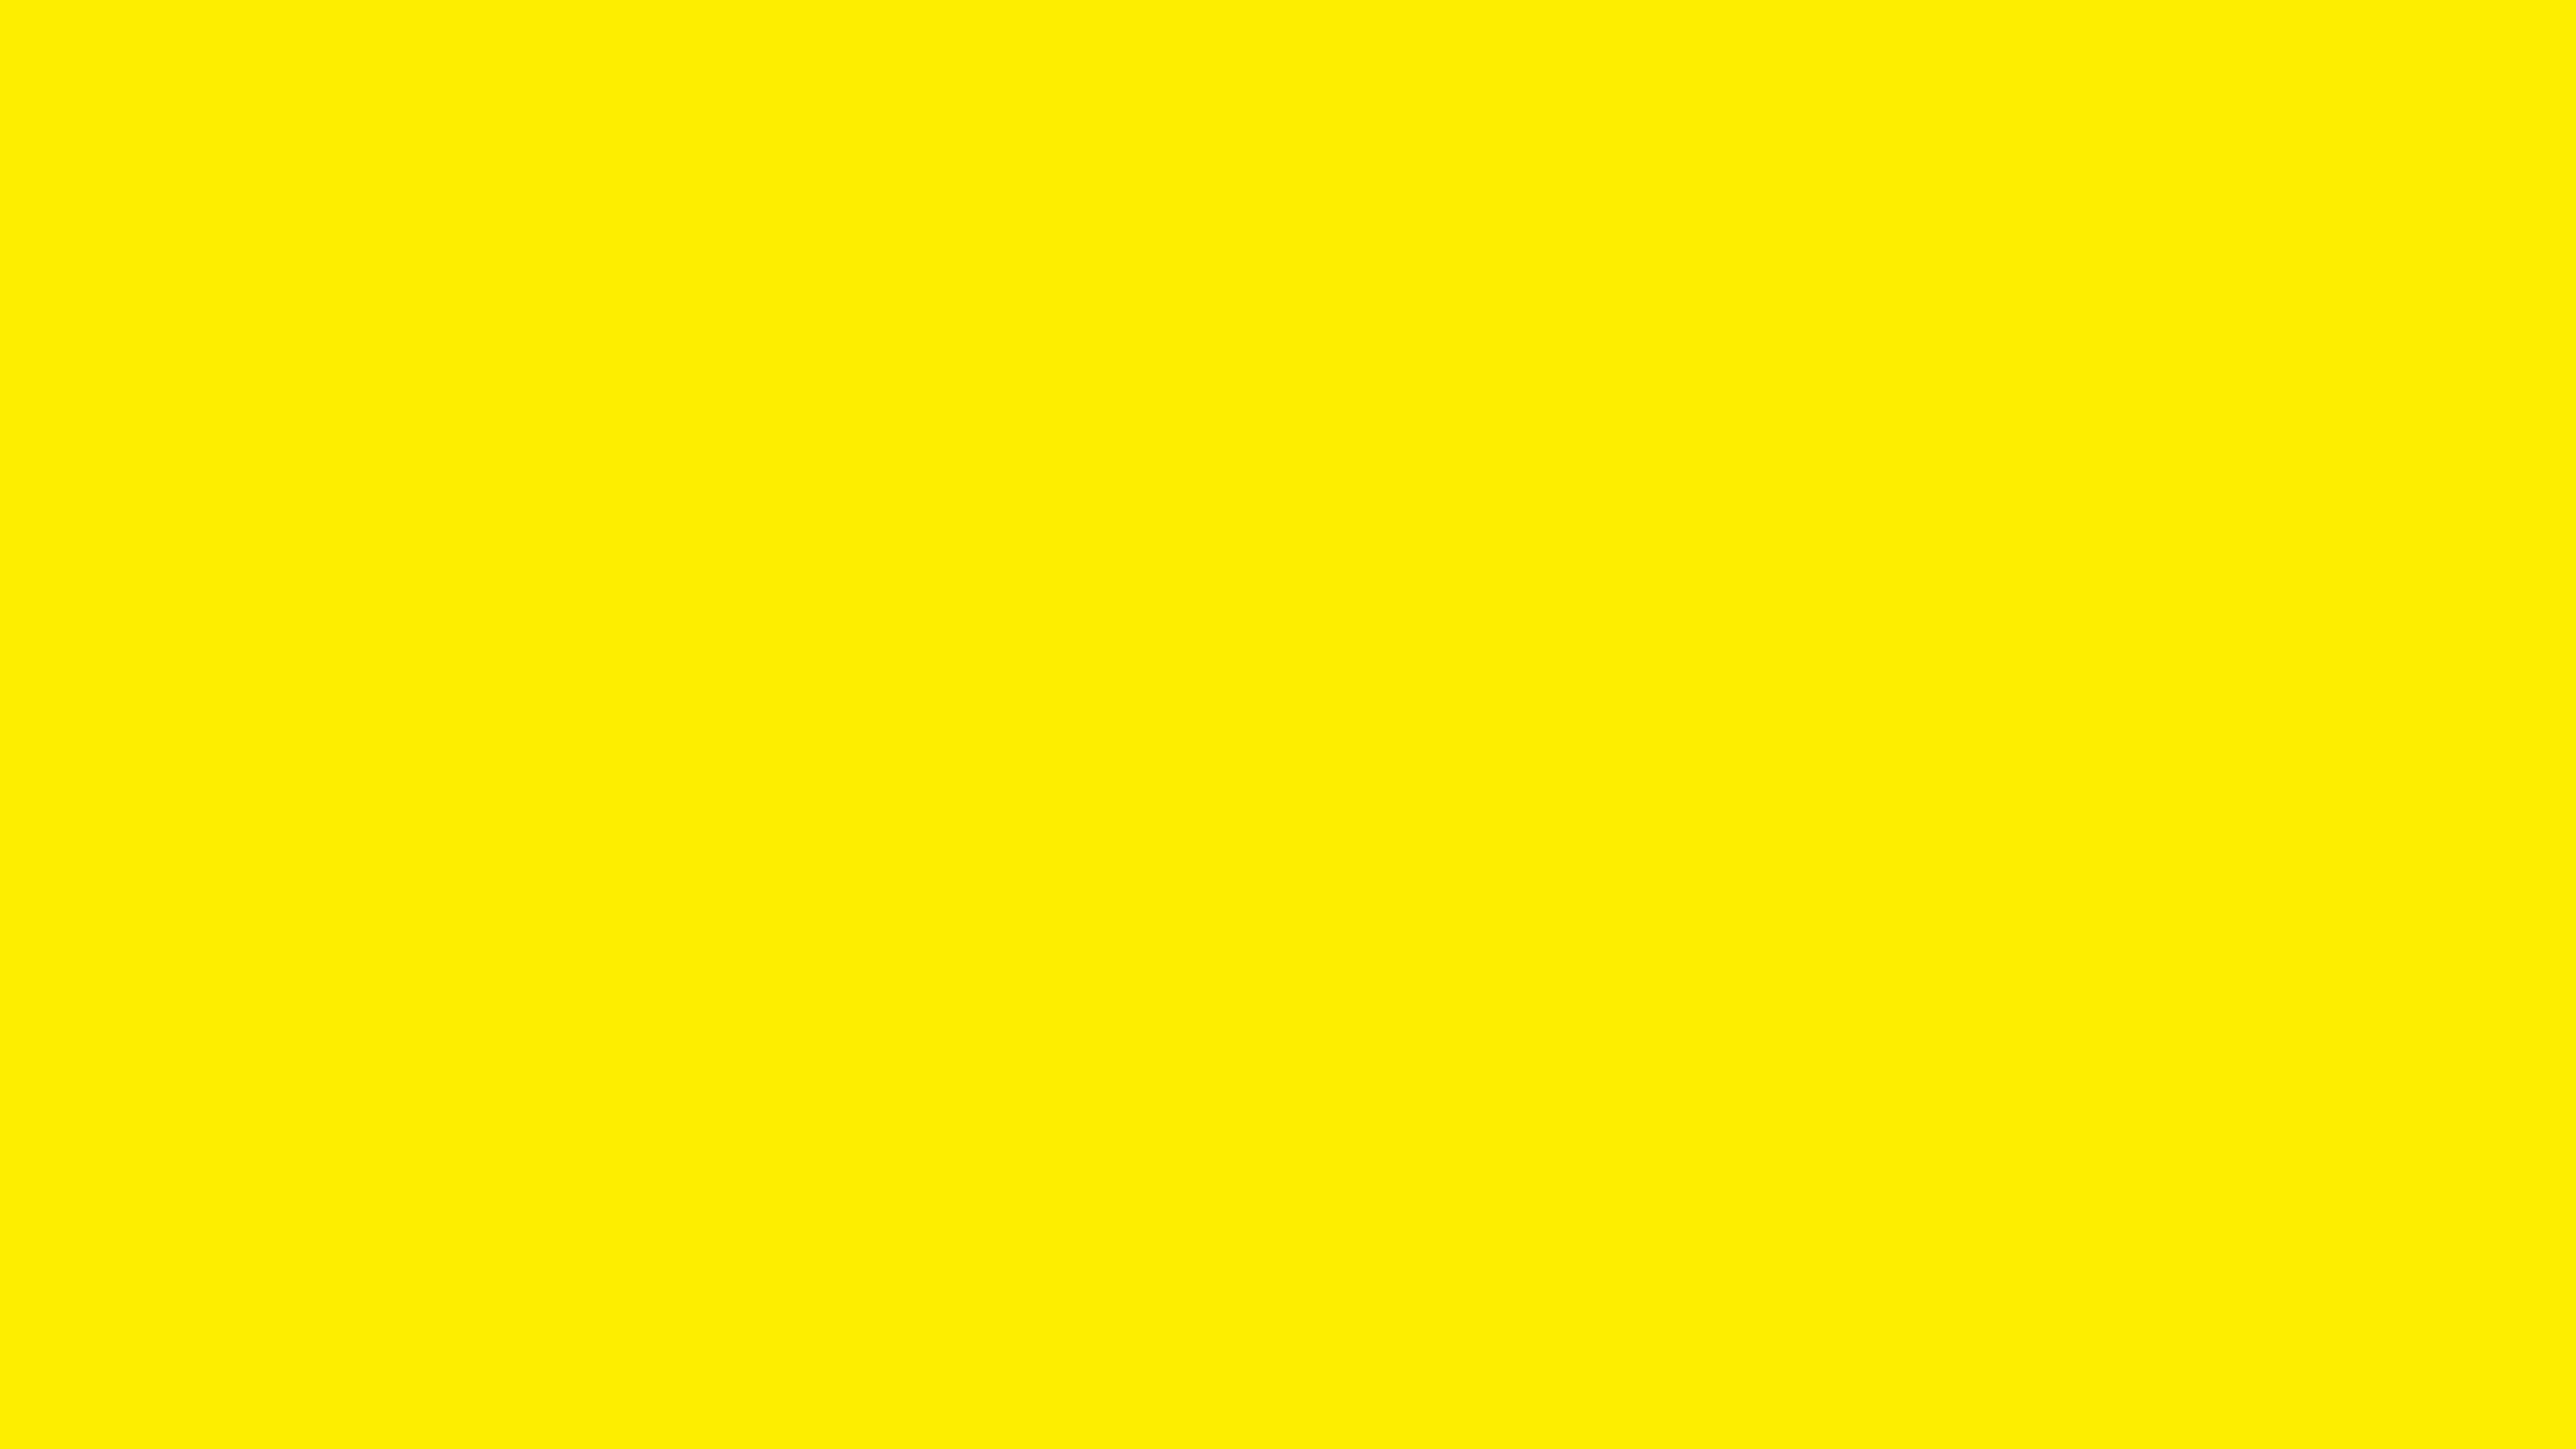 4096x2304 Aureolin Solid Color Background